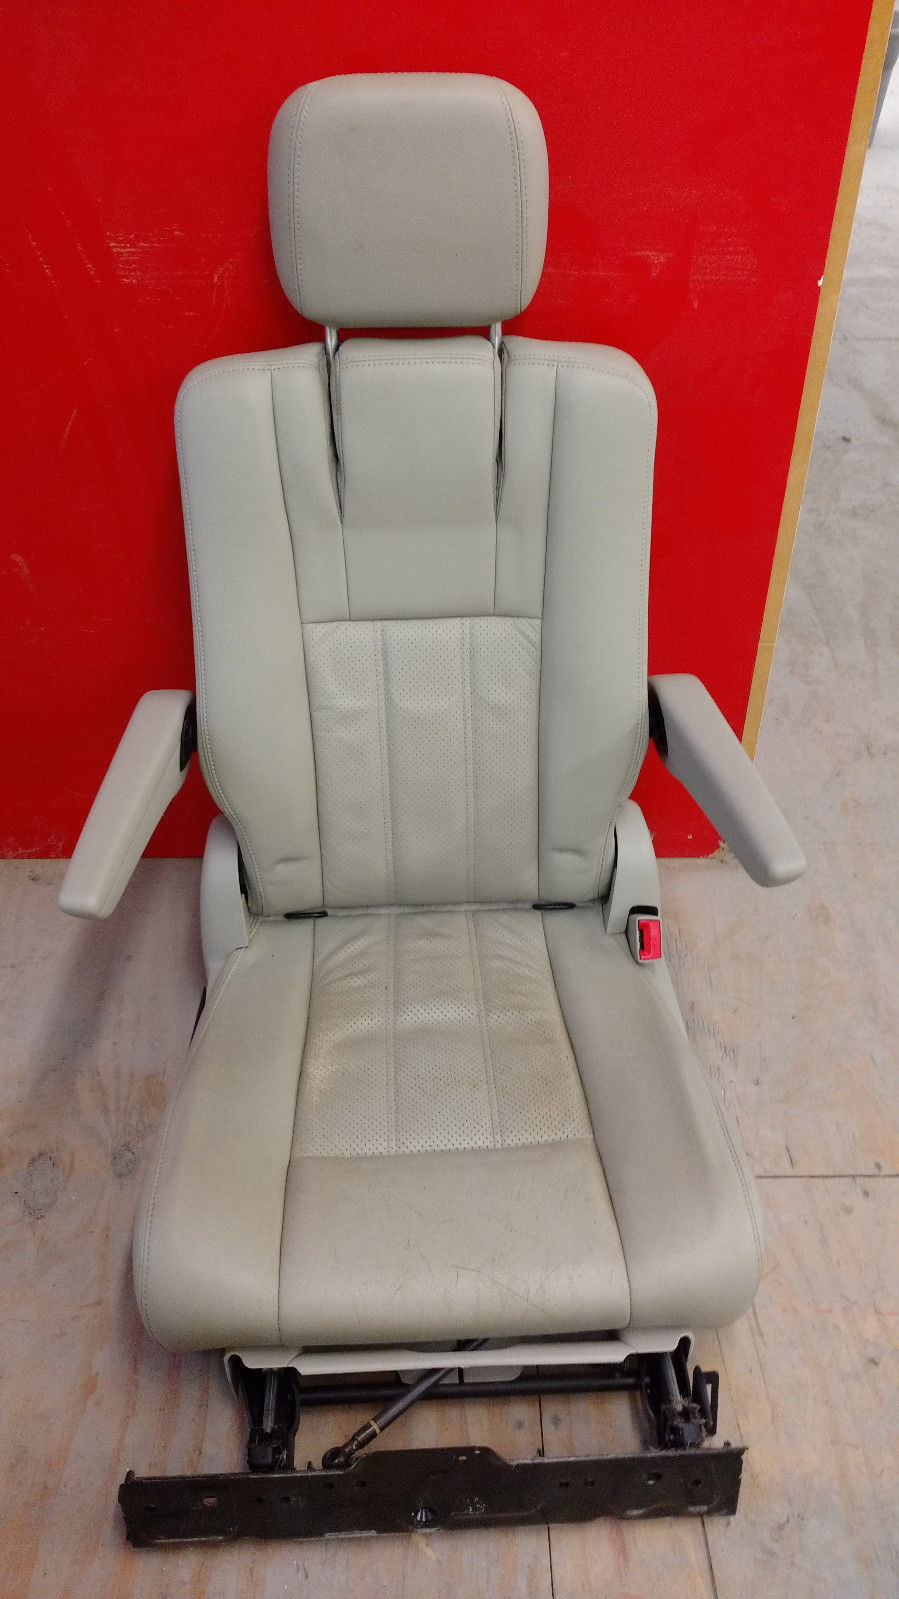 Chrysler Town and Country 2nd row Right side Sto 'n Go Leather Seat 2011